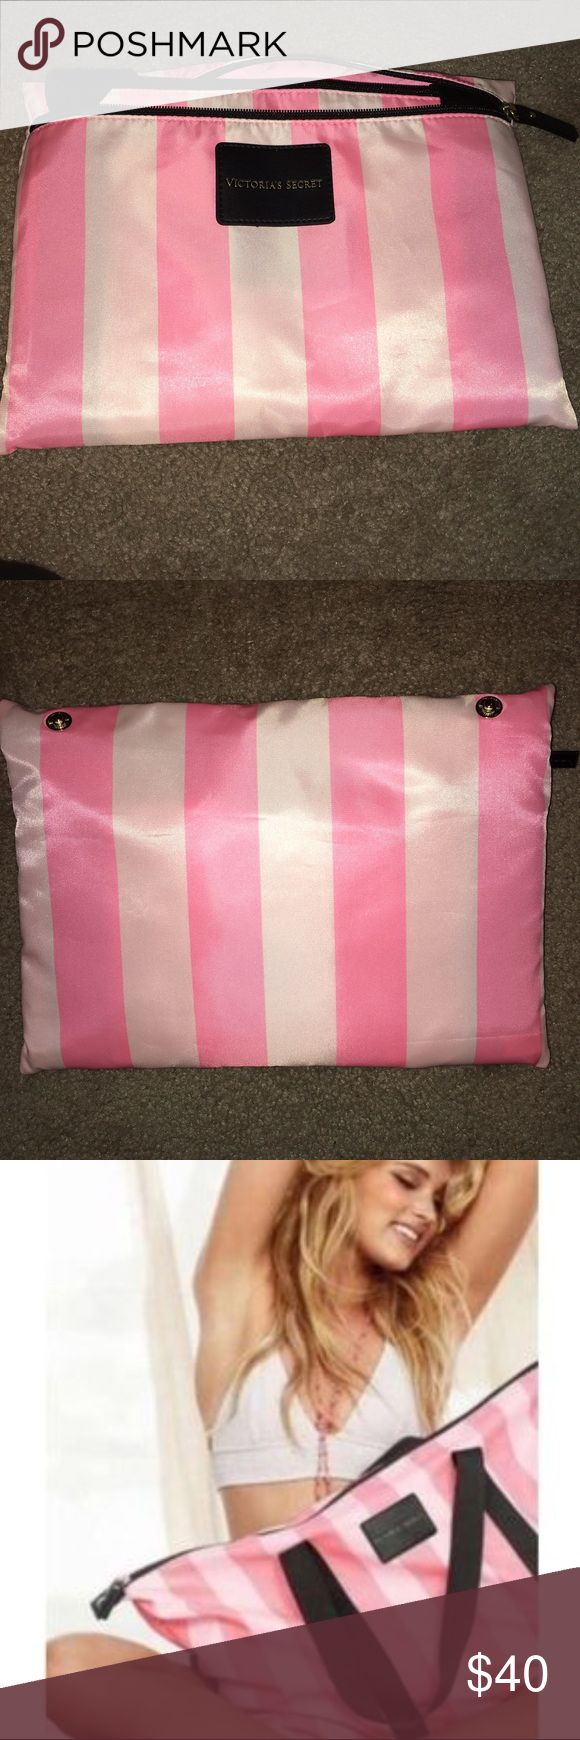 VS Limited edition pink tote bag Victoria Secret Limited Edition pink bag in excellent condition never used, still in pouch. Measures 25L x 15H x 6.5W Victoria's Secret Bags Totes